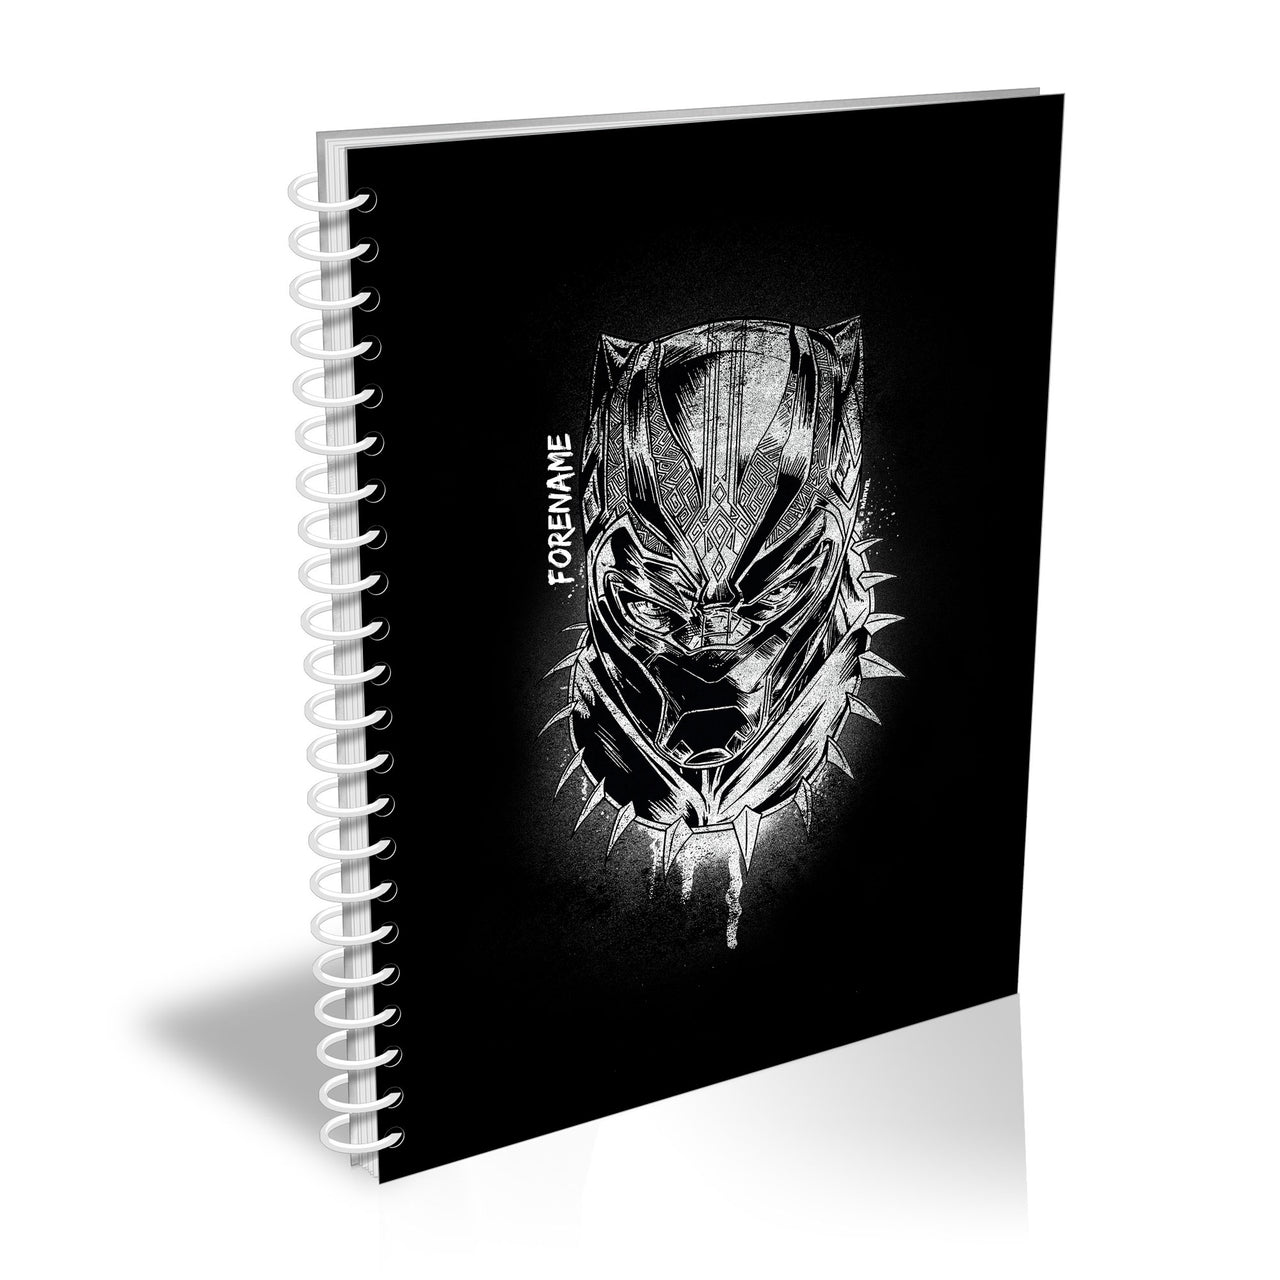 Marvel Black Panther Sketch A5 Notepads, Gifts